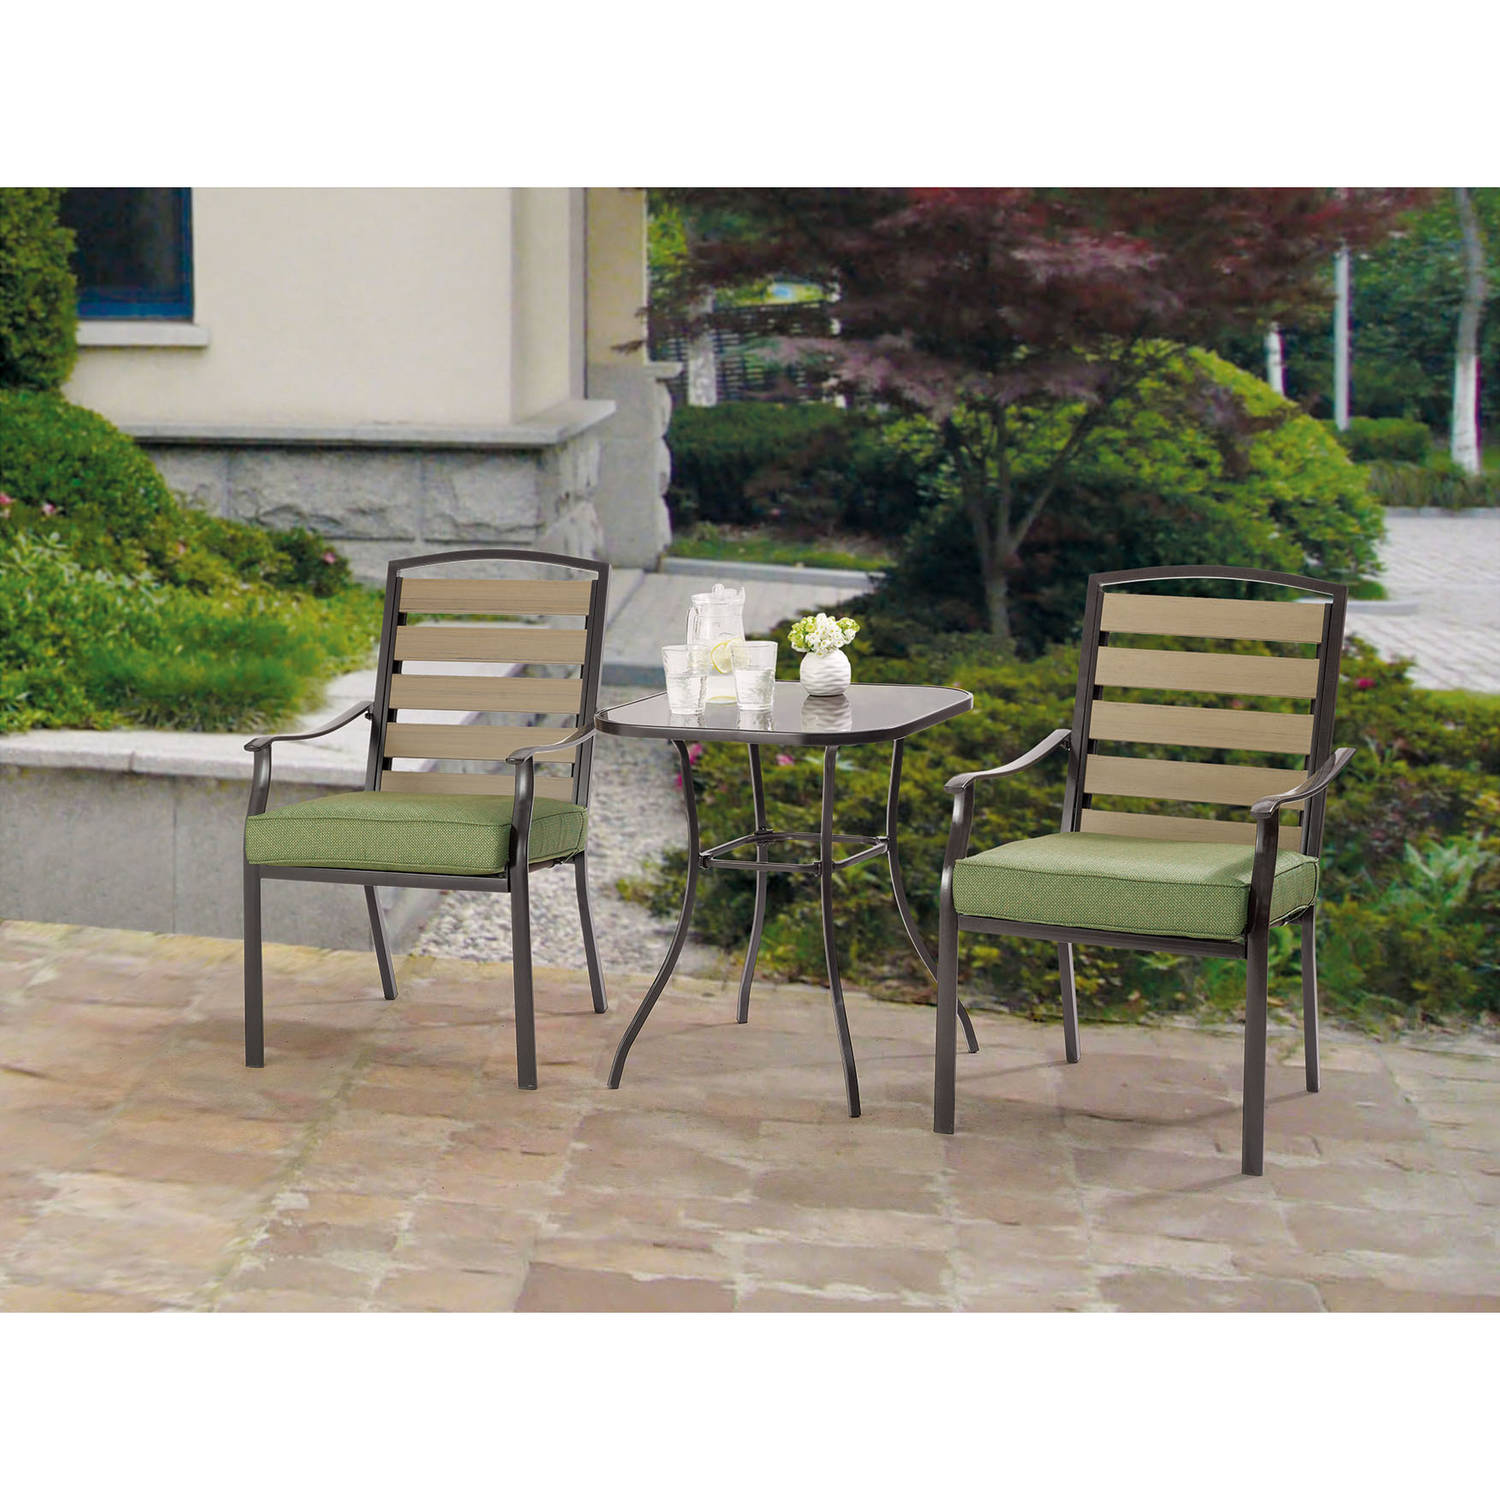 Mainstays Bryant Meadows 3-Piece Bistro Set